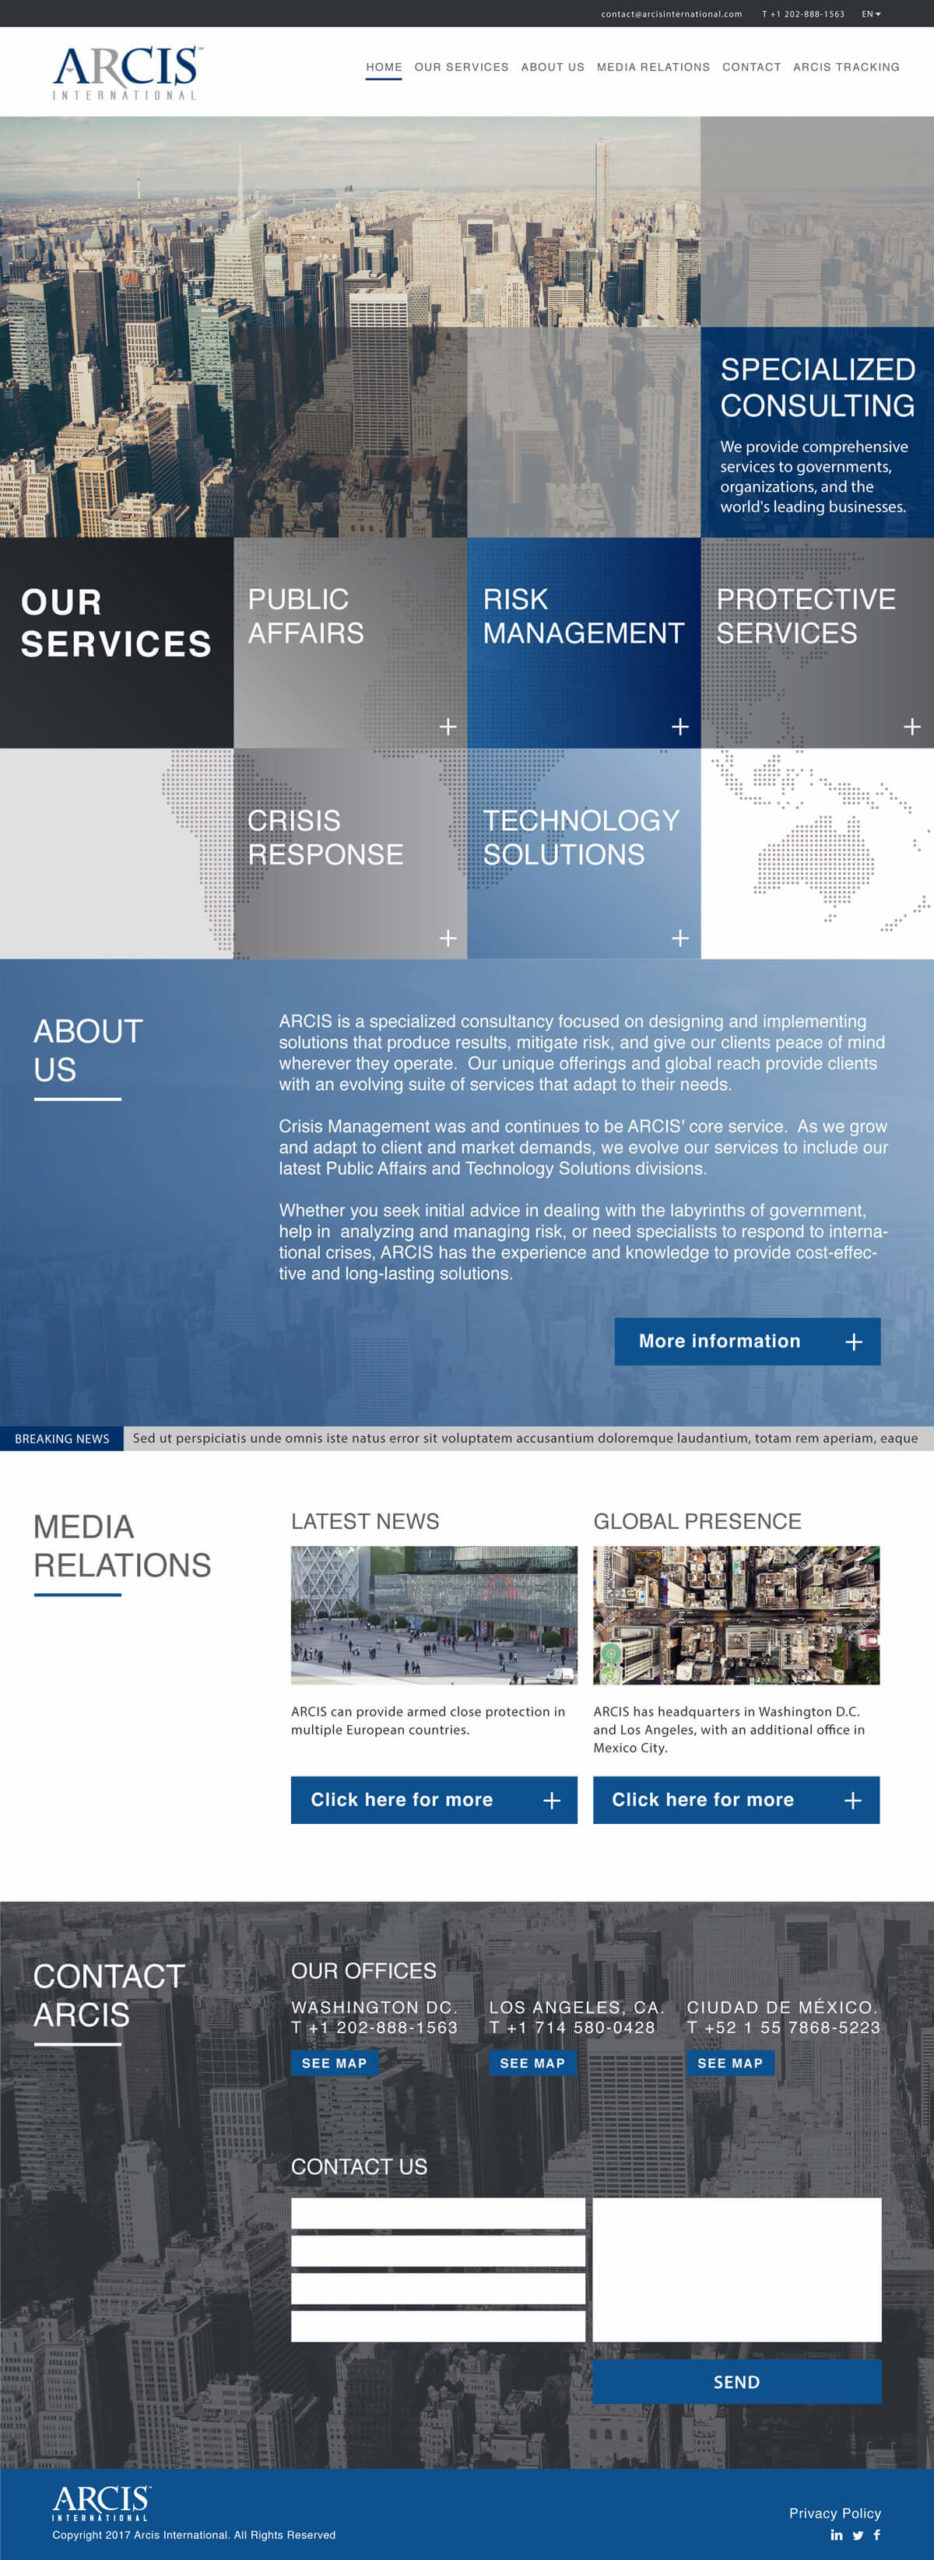 Diseño web responsiva UX/UI Arcis International